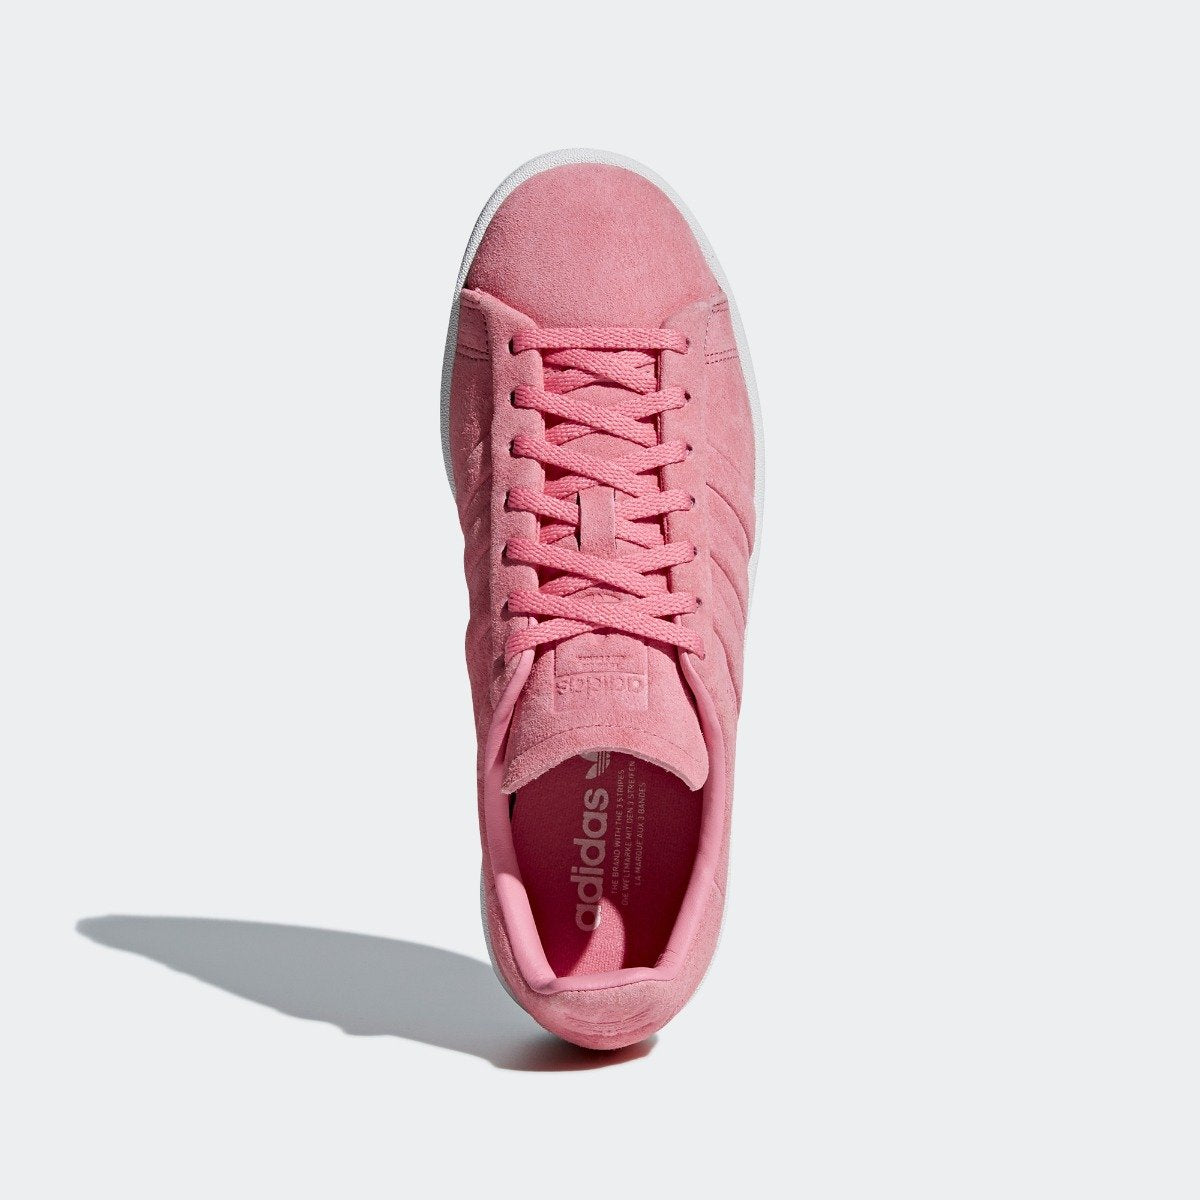 sports shoes 5799b b1e9c Womens adidas Originals Campus Stitch and Turn Shoes Chalk Pink. 1